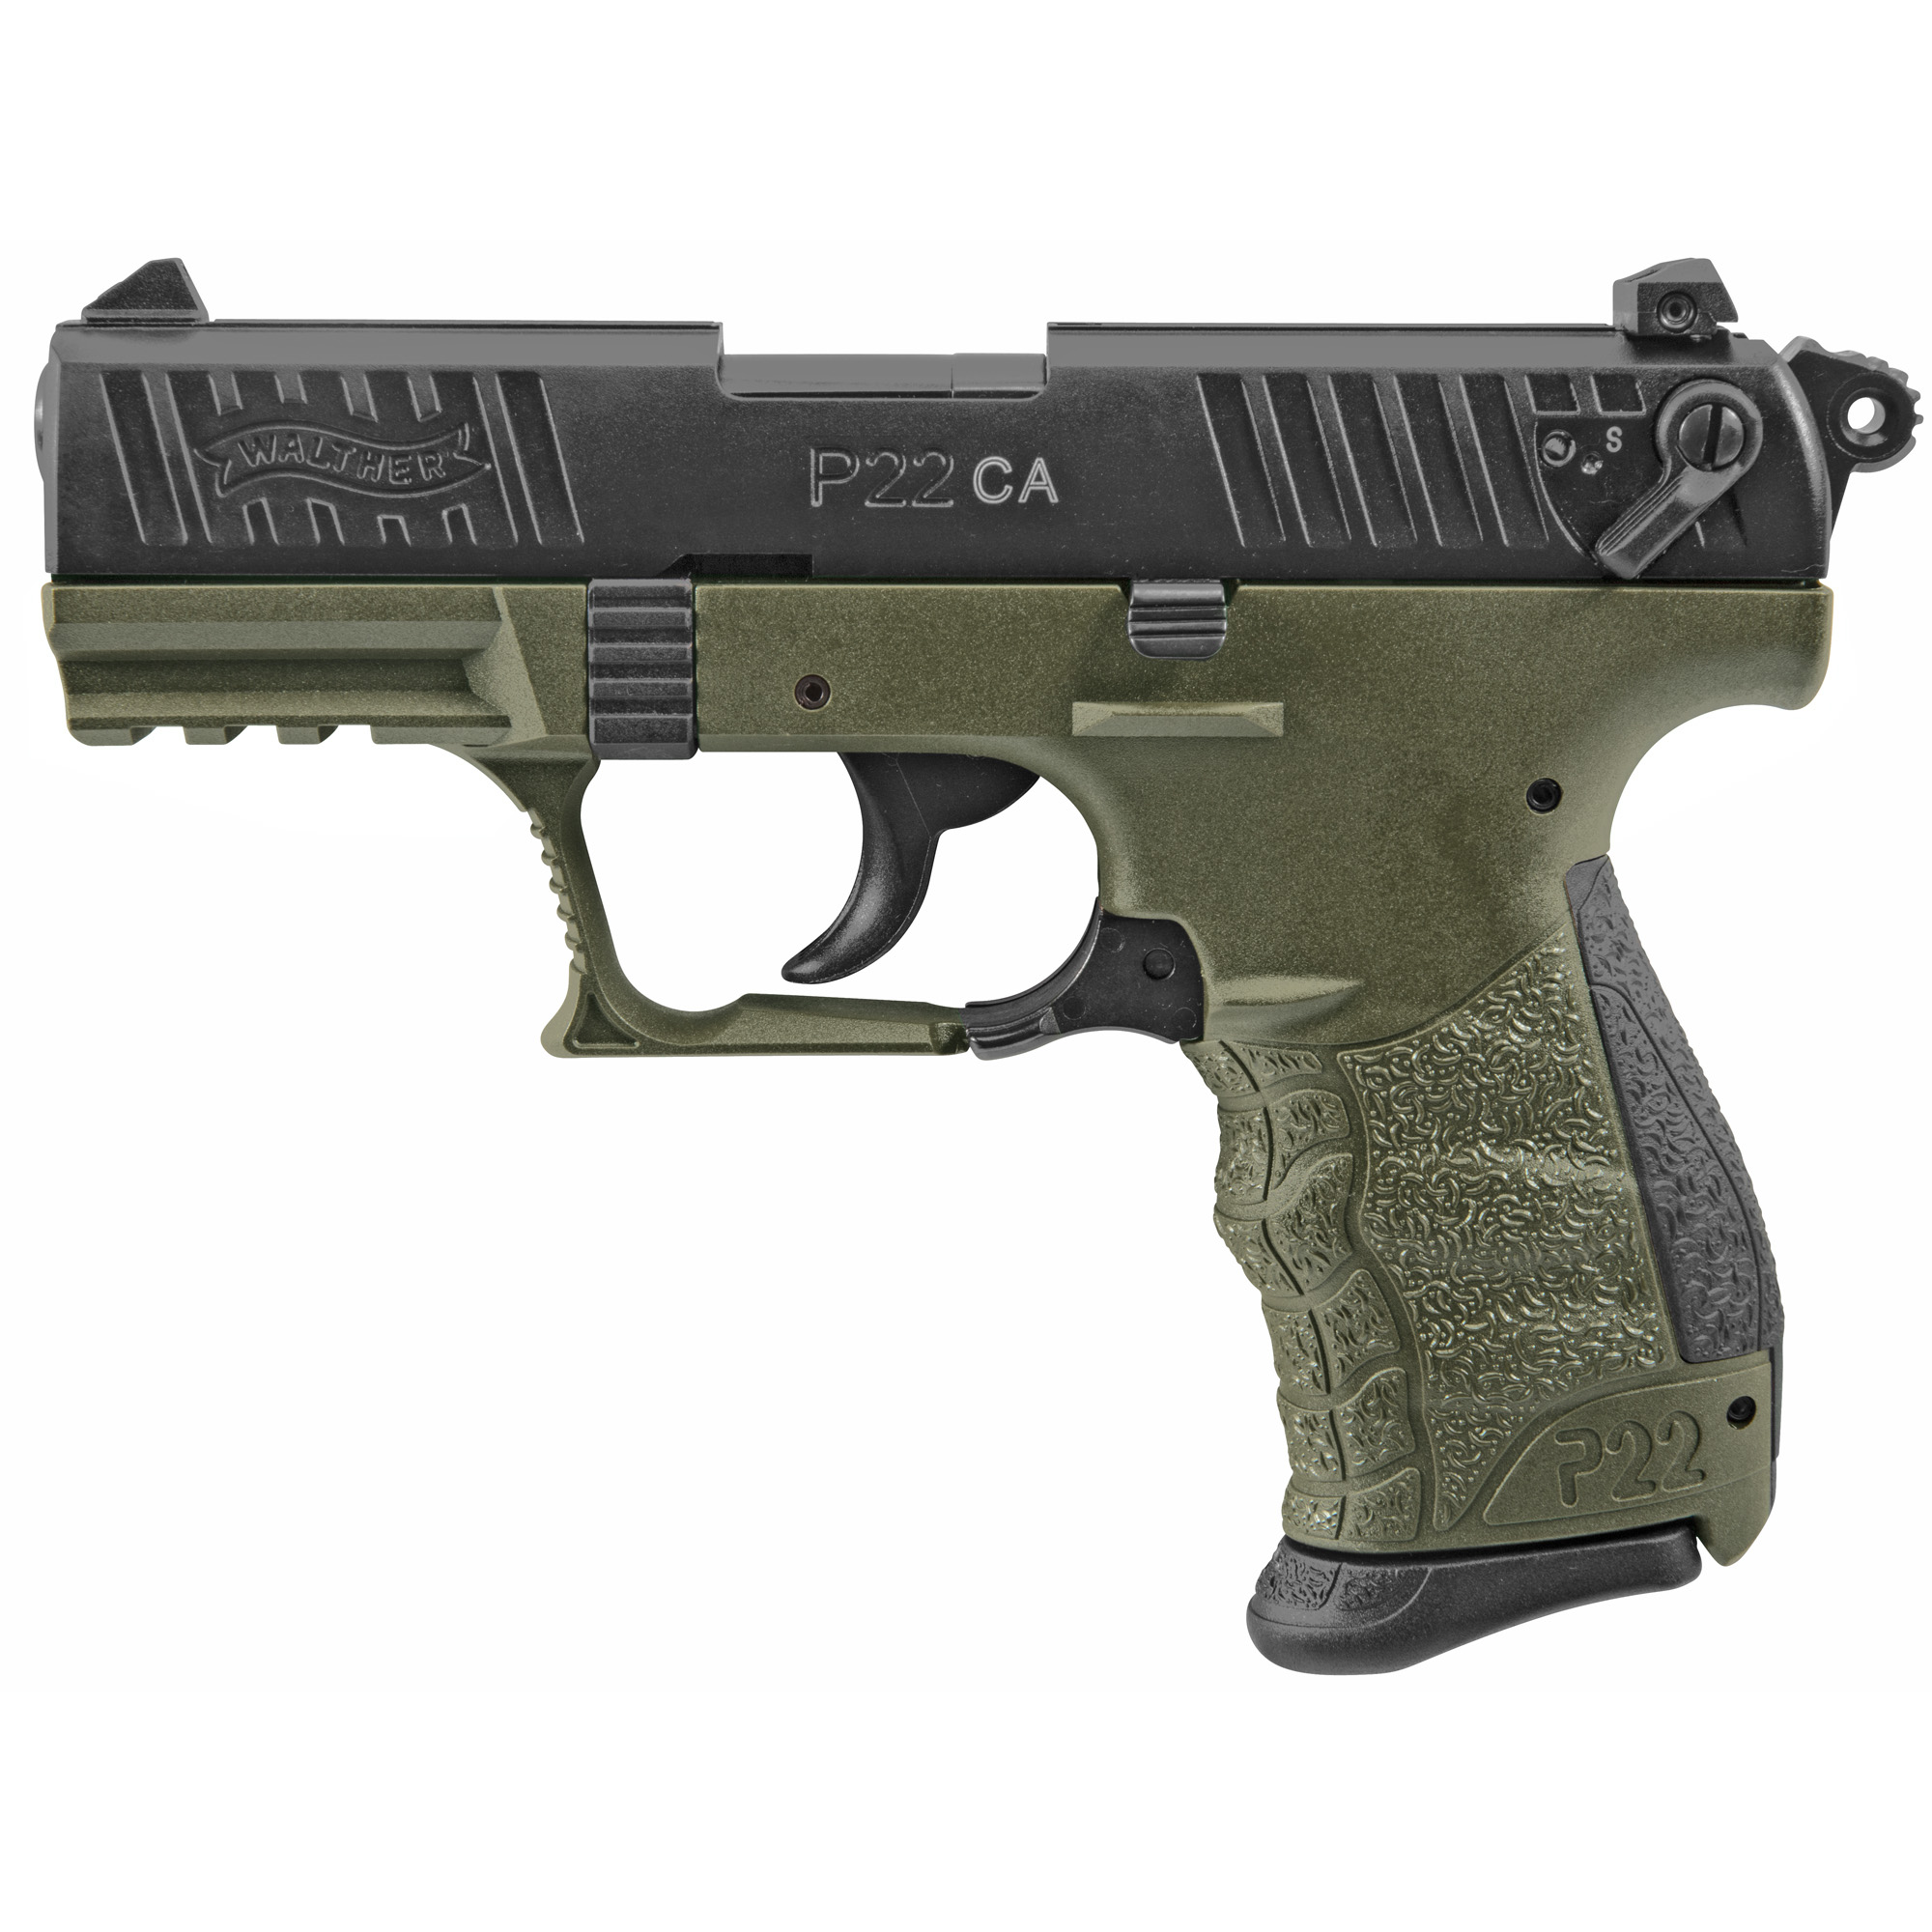 The .22 rimfire handgun will never look the same. The P22 changed everything. Walther adapted the tactical styling and Performance Design concepts from our centerfire handguns and applied them to the .22 L.R. This created a new movement in the design of contemporary rimfire handguns.